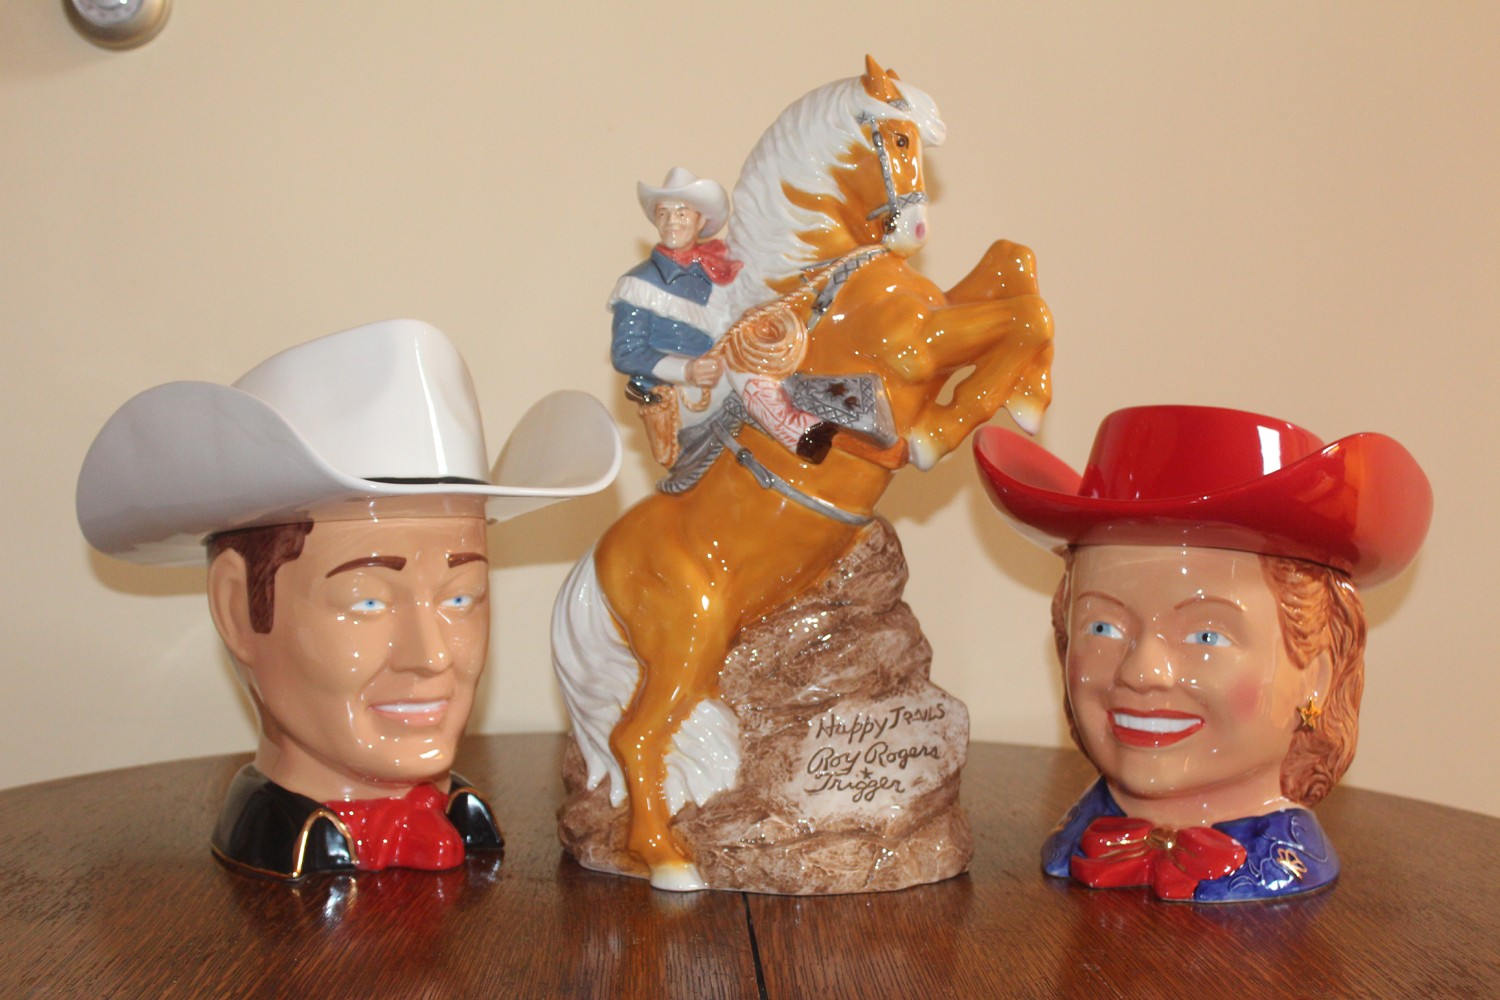 Roy Rogers and Dale Evans with Trigger Cookie Jar Set. (Collector Value $900)